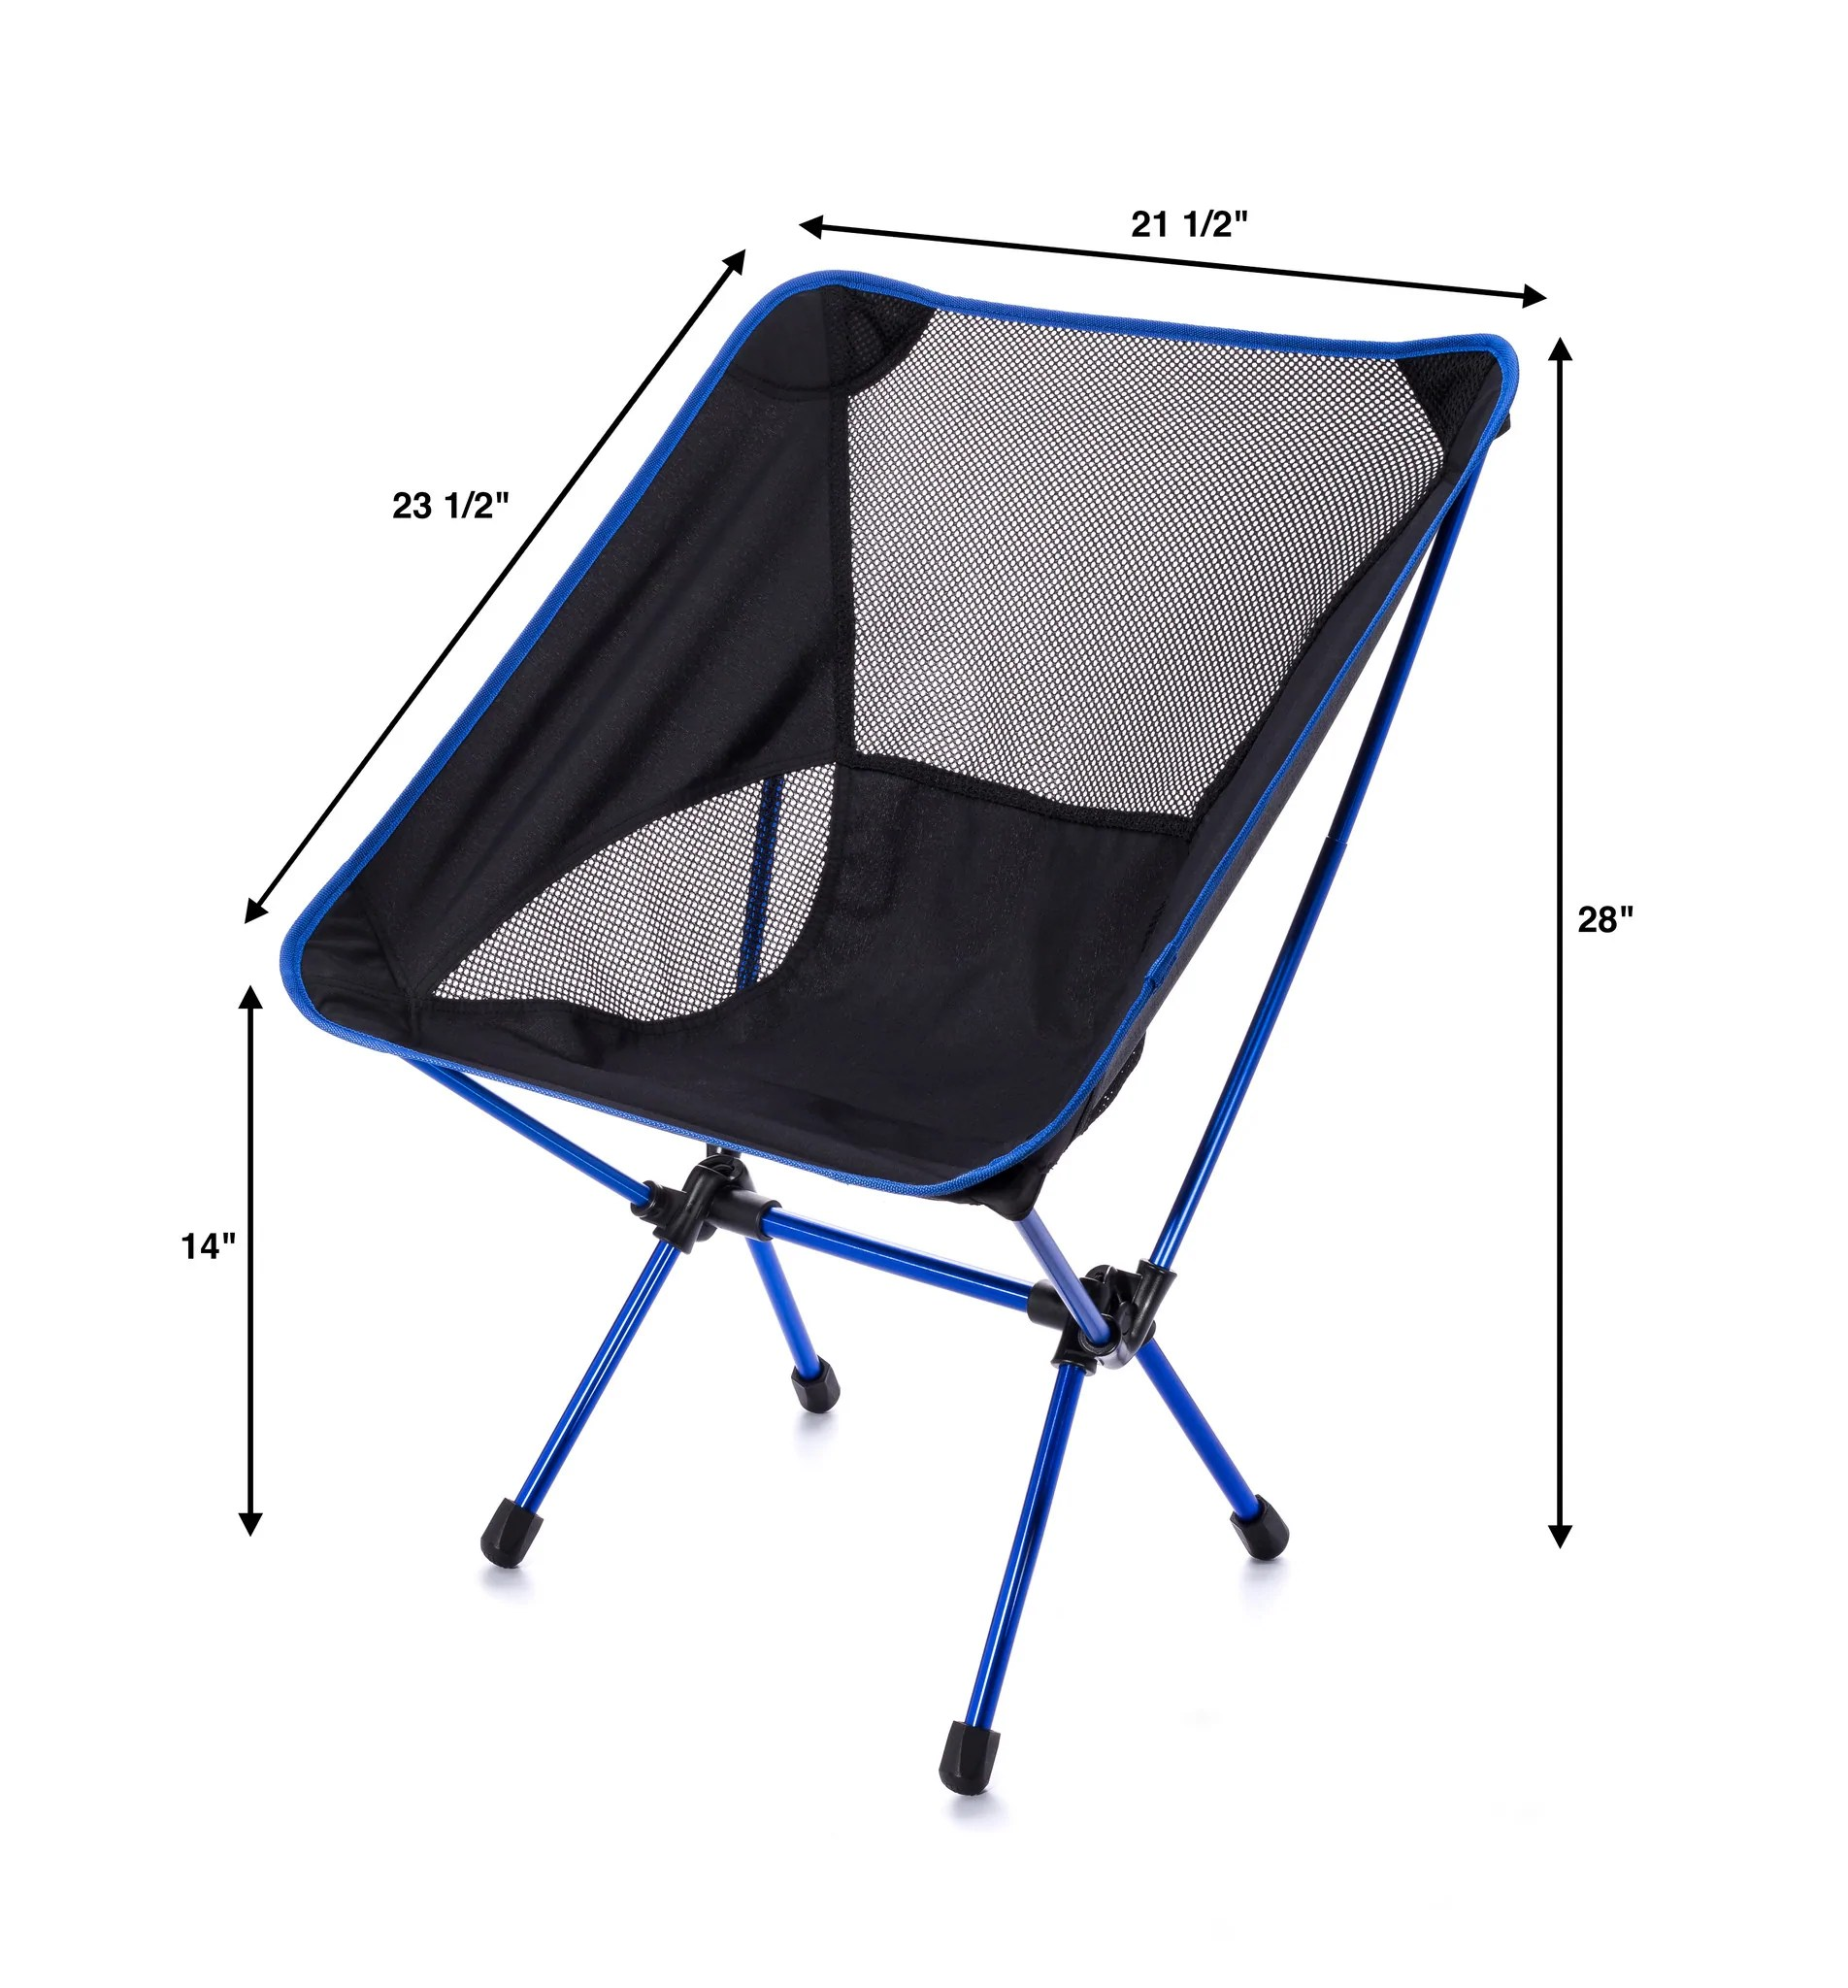 ultra lightweight folding chair cover for rent philippines trekultra portable compact camp with bag